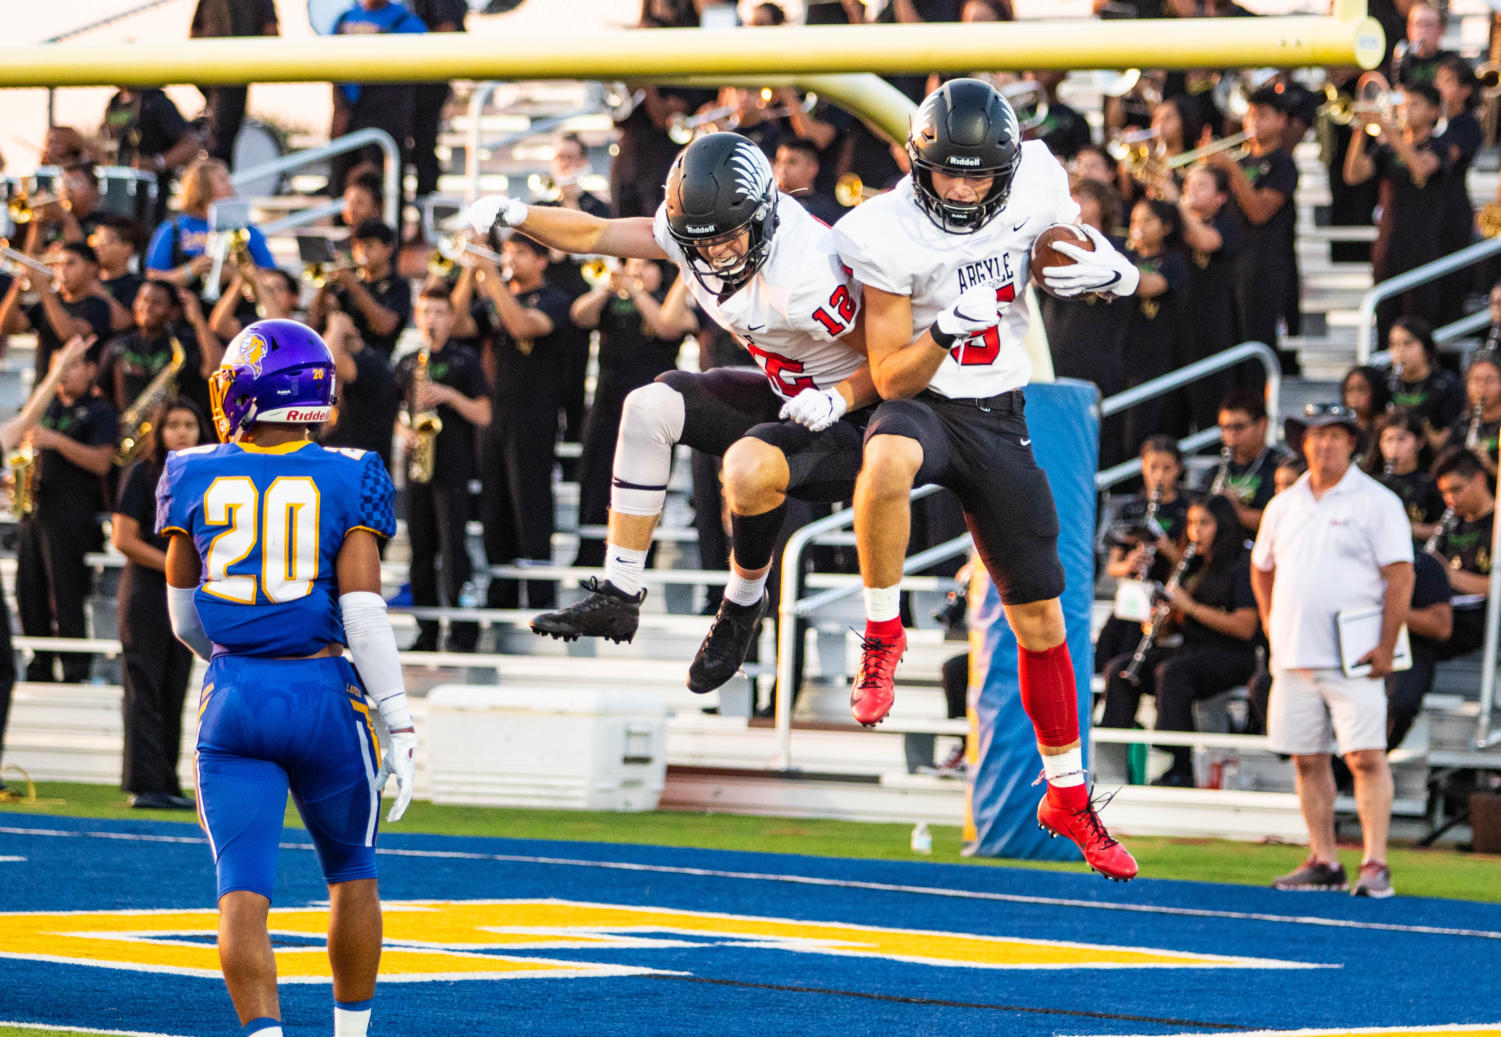 The Eagles defeat the La Vega Pirates with a score of 49-35 on September 6th, 2019. (Photo by Campbell Wilmot/The Talon News)